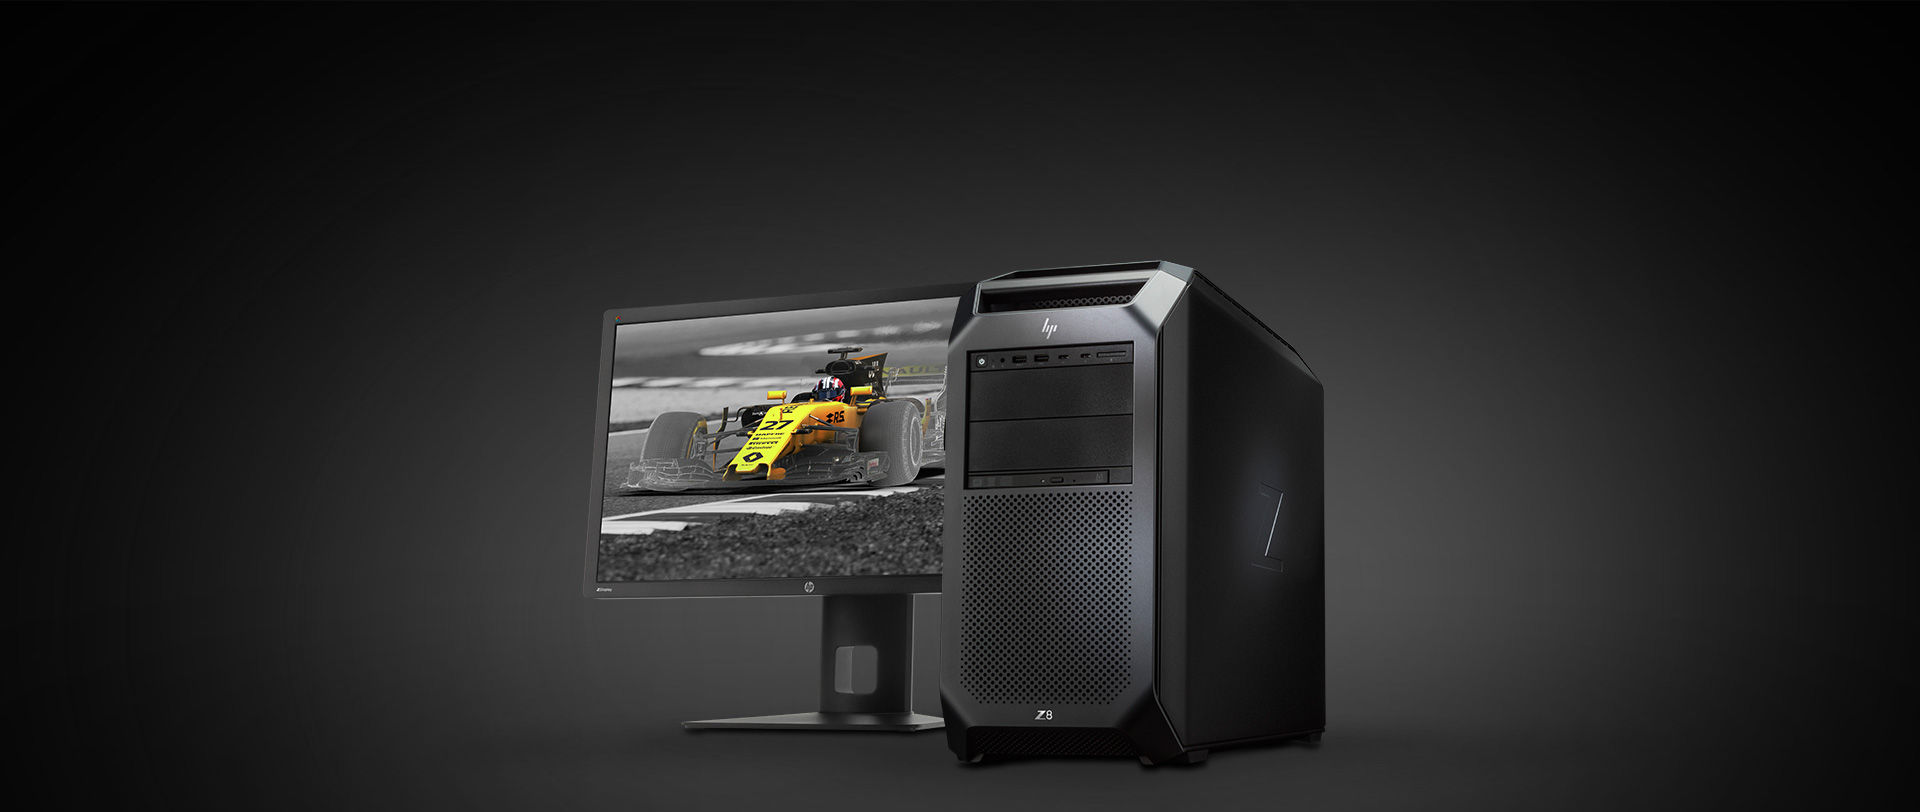 HP shows us what a real PC workstation looks like with a 56-core